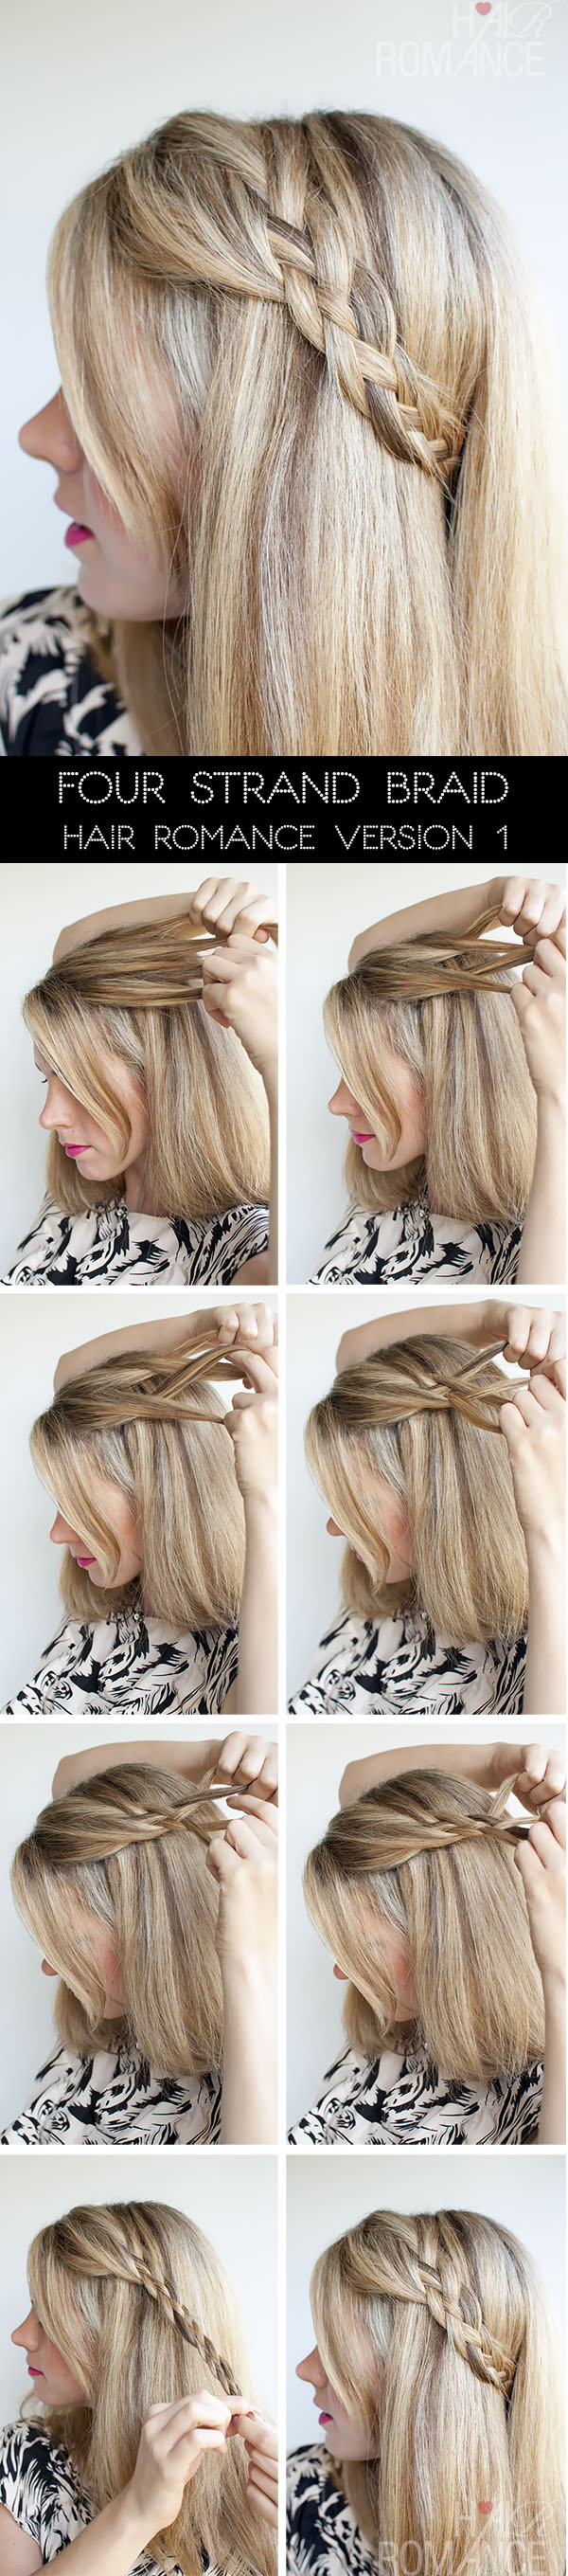 Hair Romance - 4 Strand Braid Tutorial - version 1